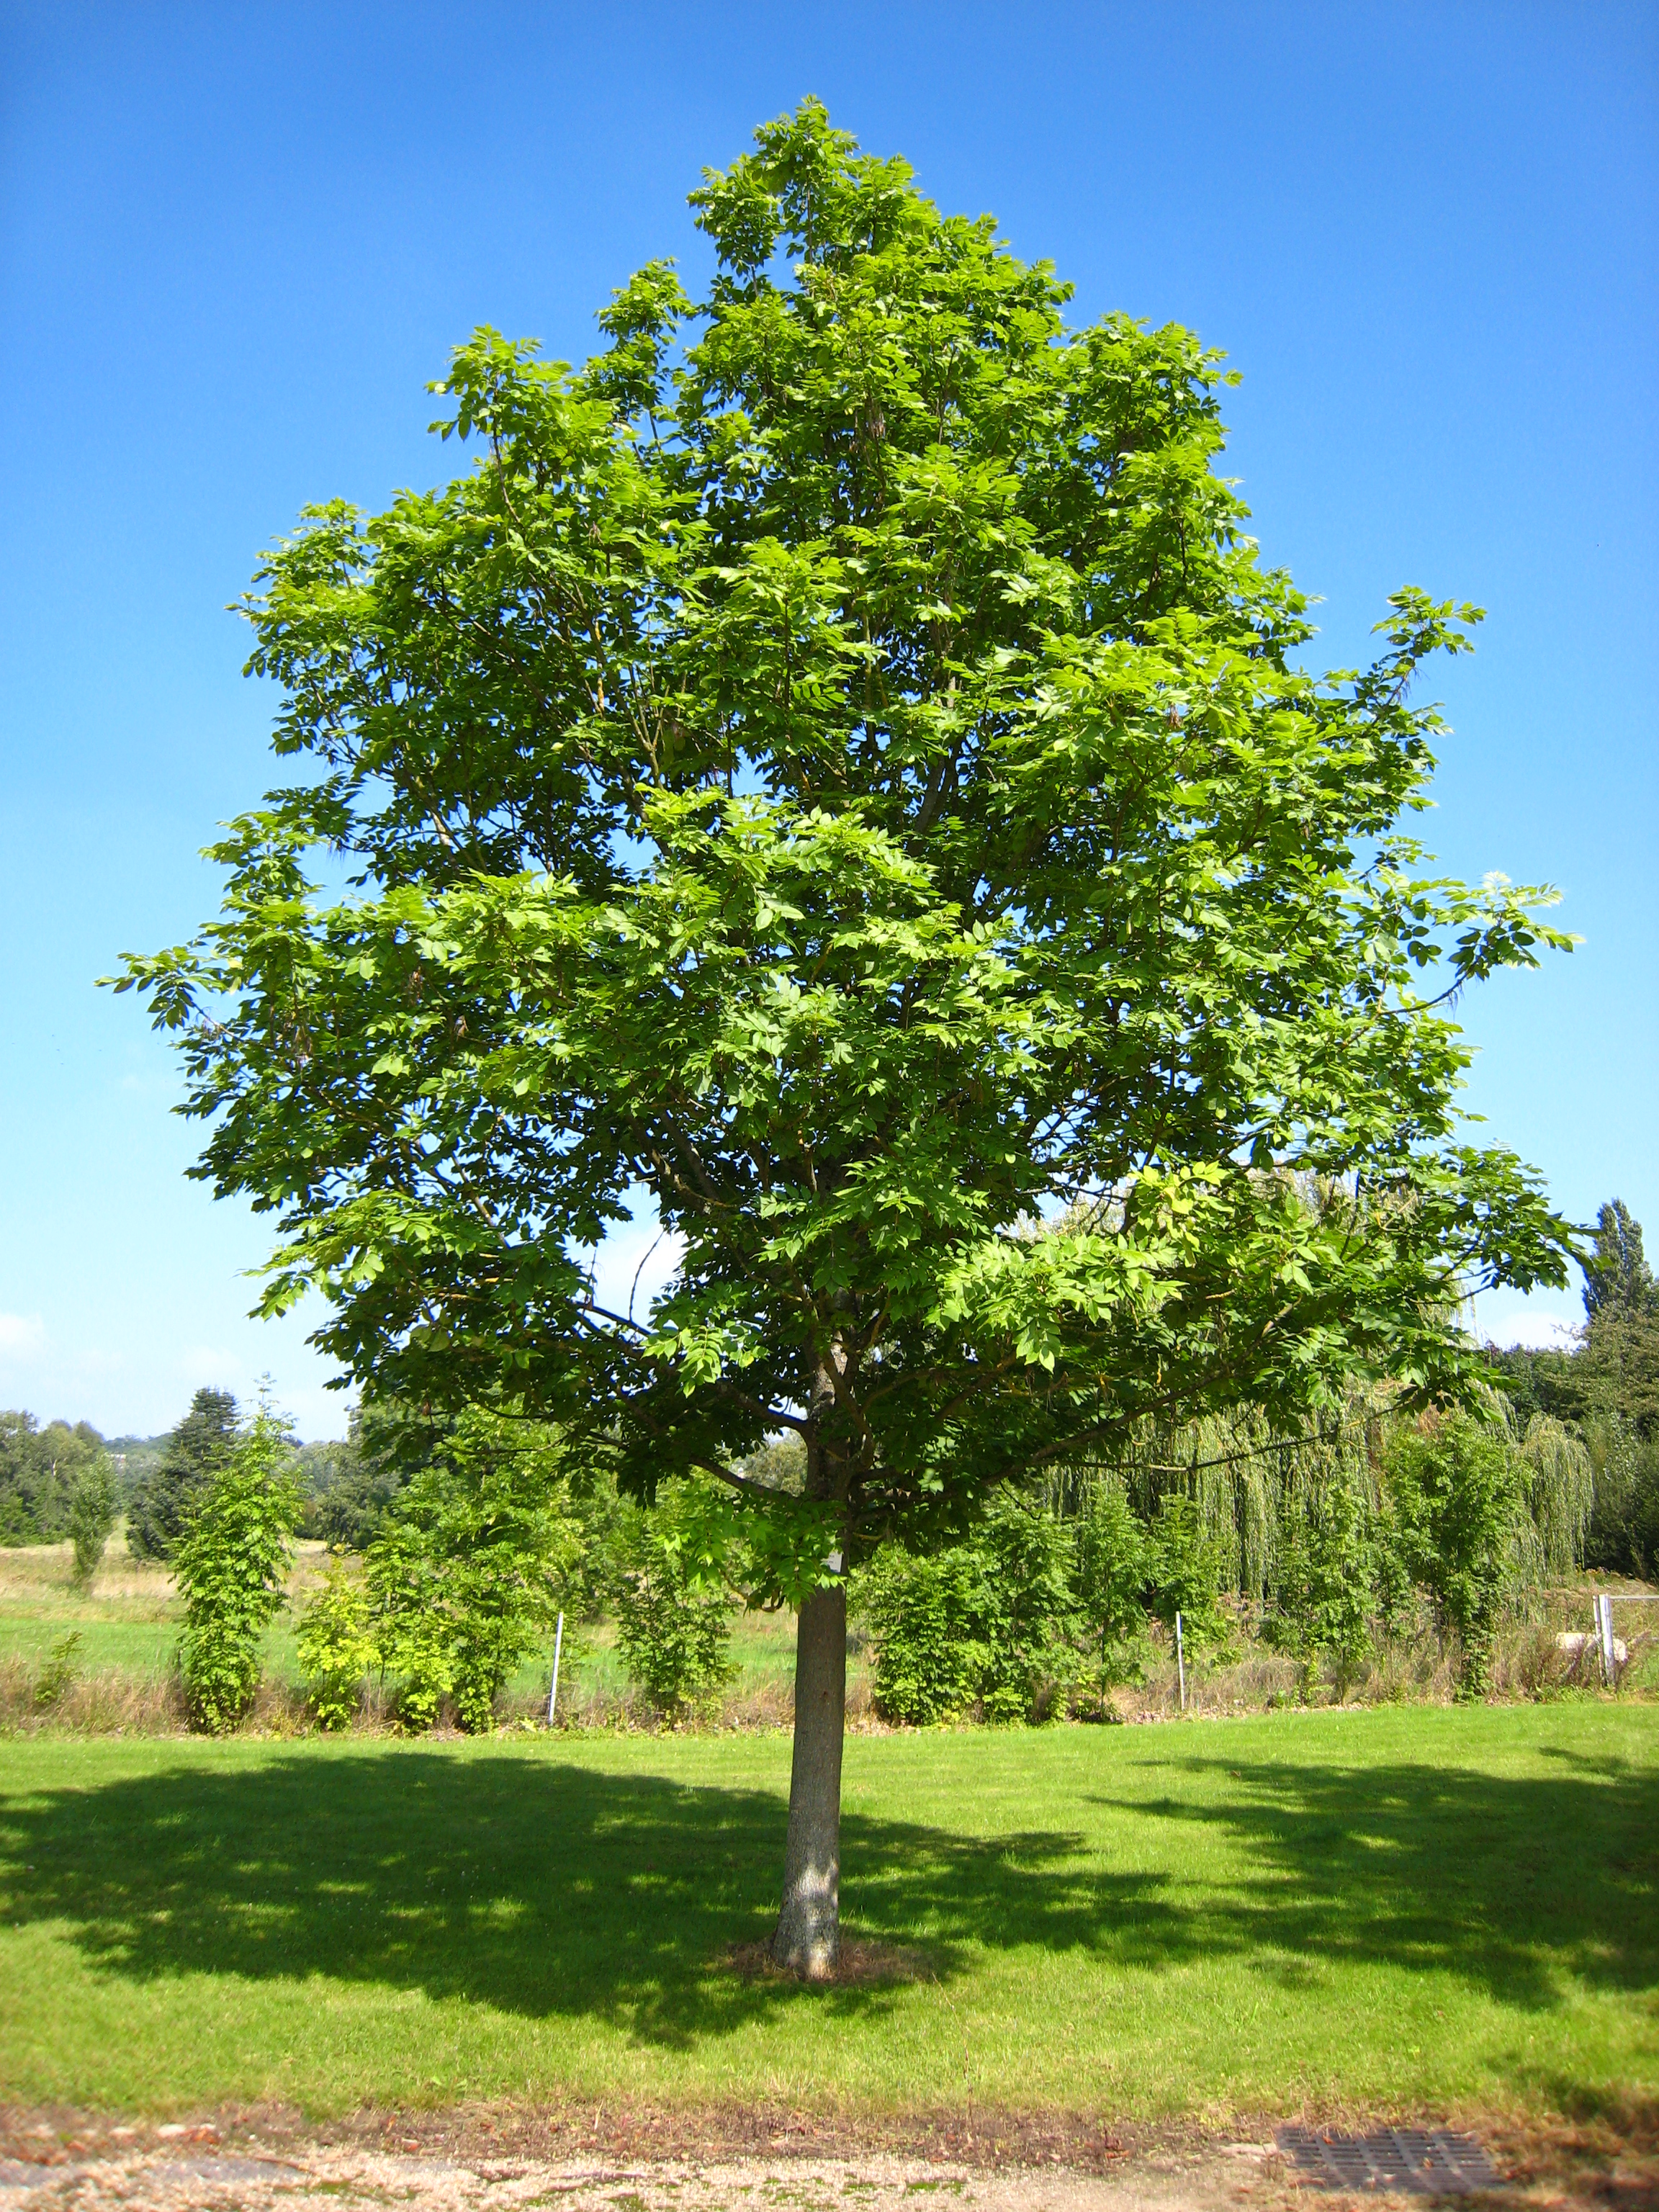 File:Fraxinus excelsior tree.jpg  Wikimedia Commons